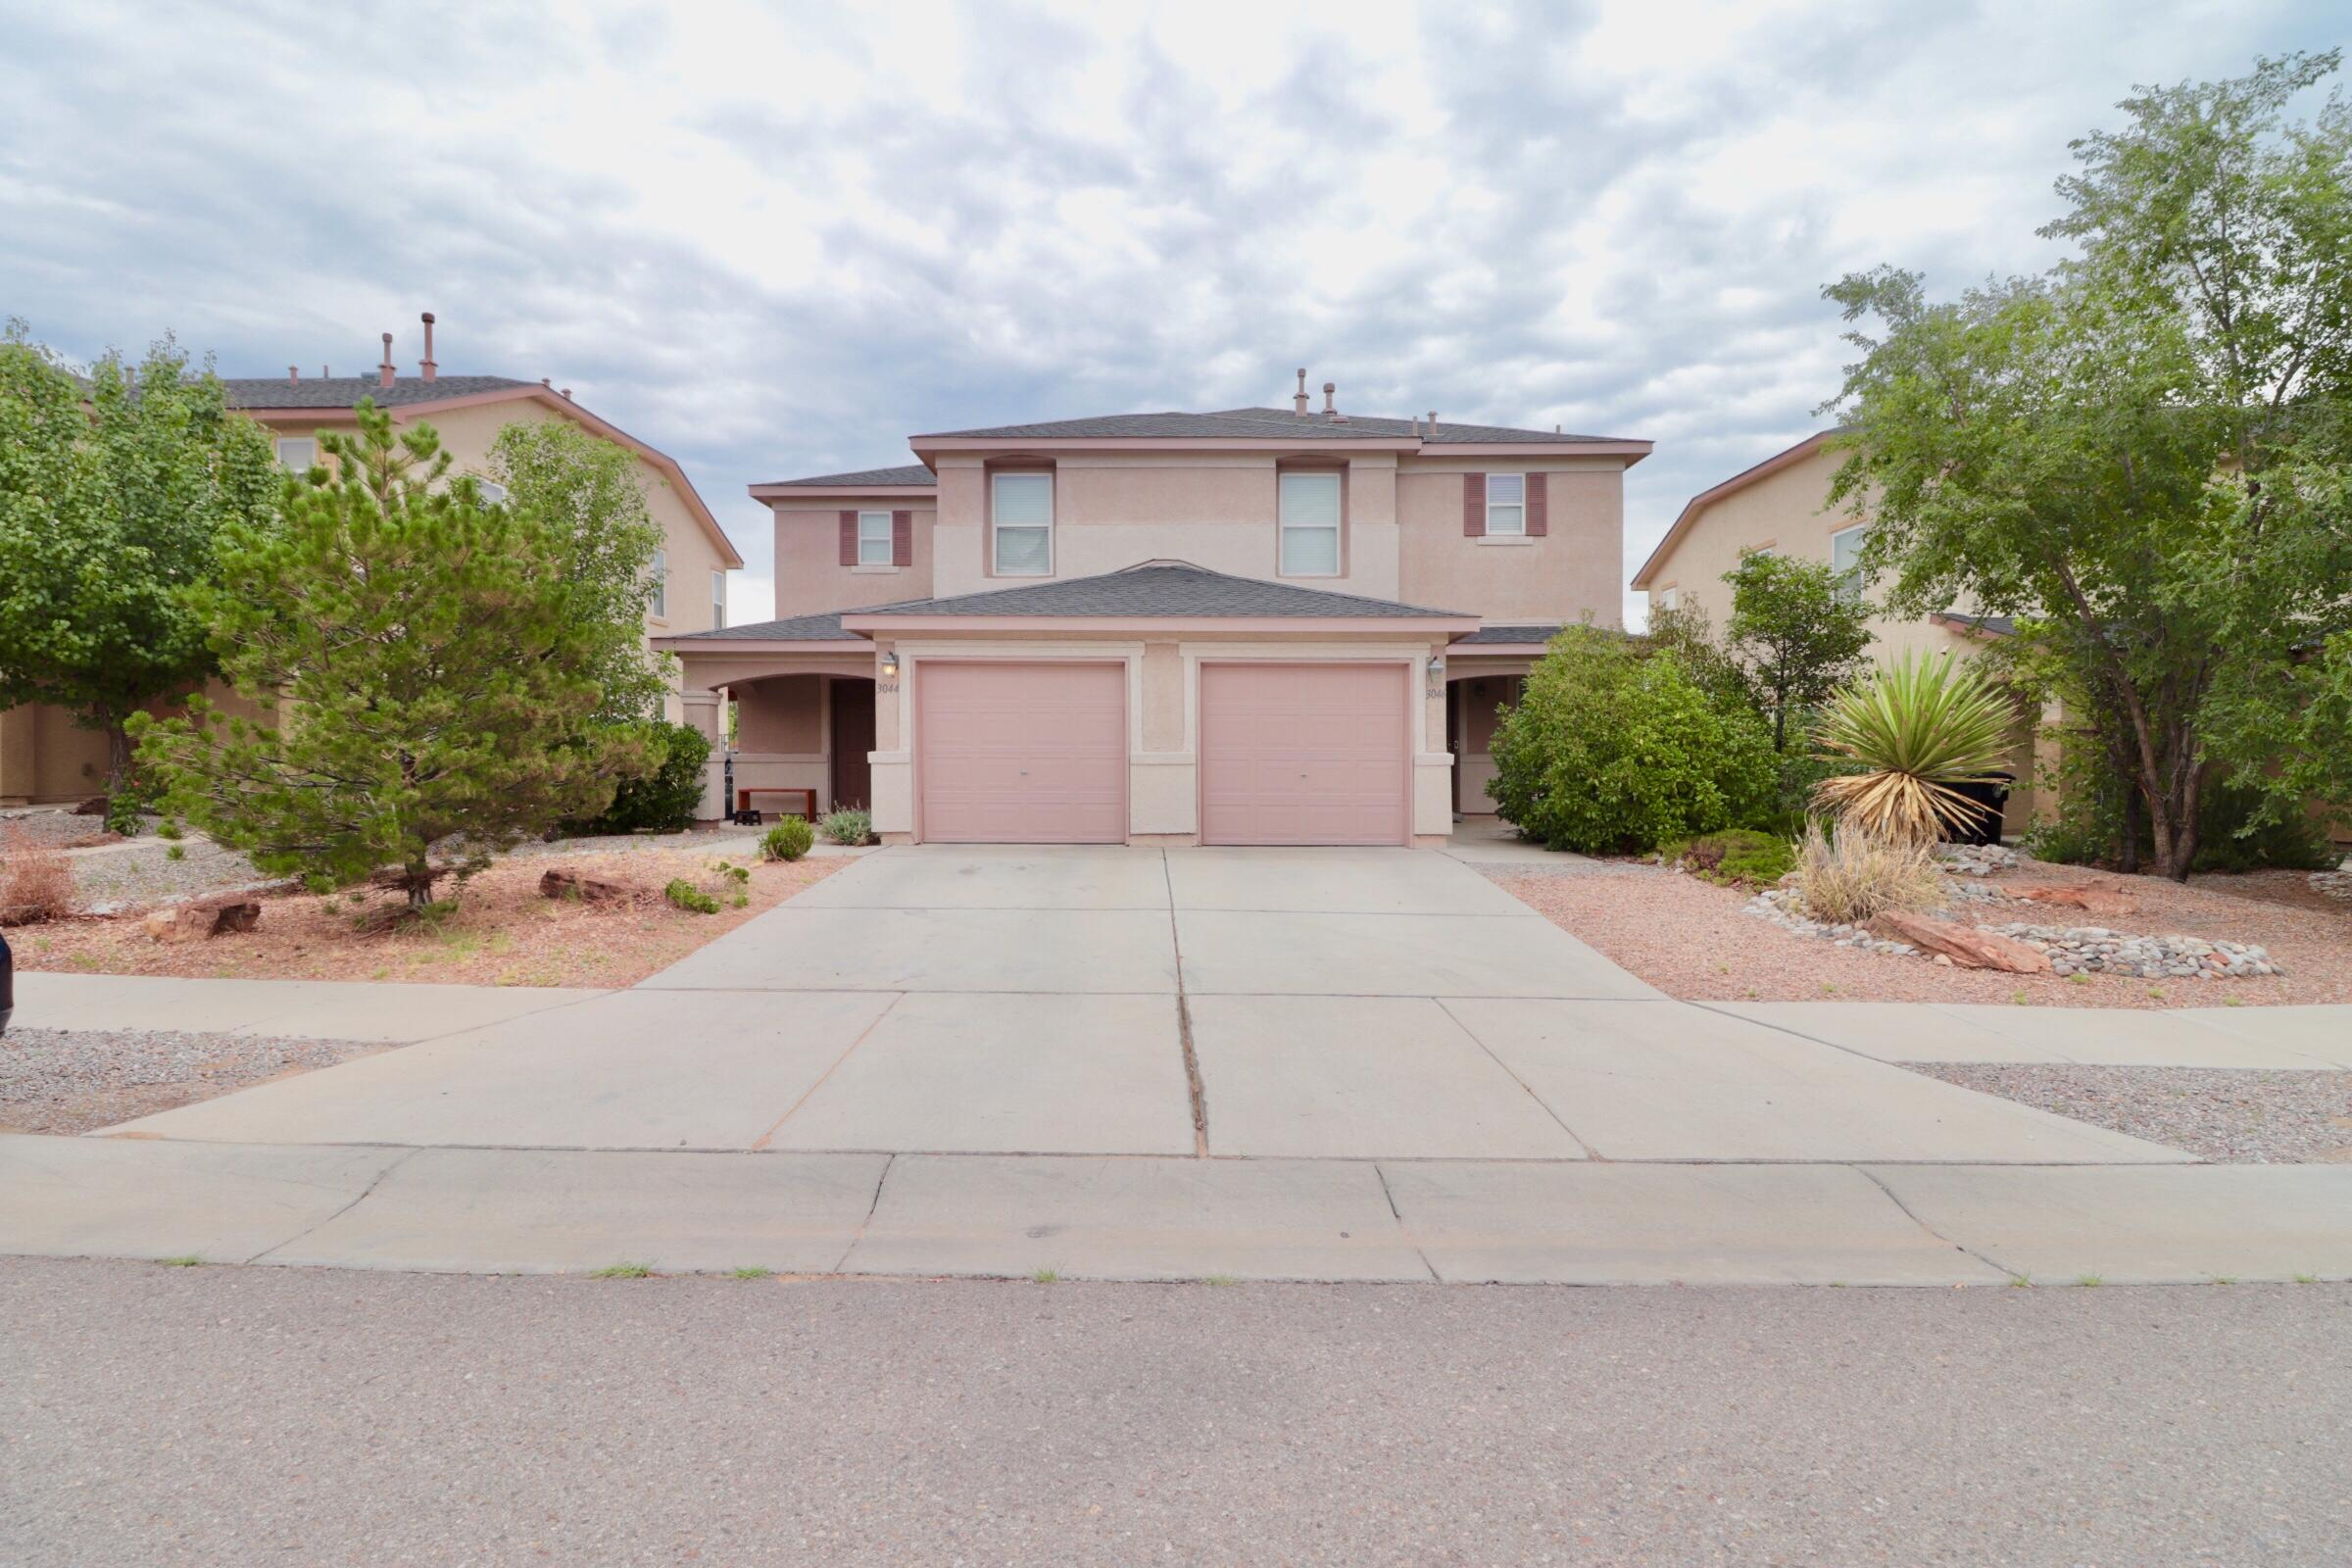 Very nice 3 bed 3 bath town home with finished backyard!  Nice open floor plan w beautiful updated flooring.  Professionally painted and cleaned so this beauty is MOVE IN READY!  Wont last long and photos dont do it justice so go see it today.